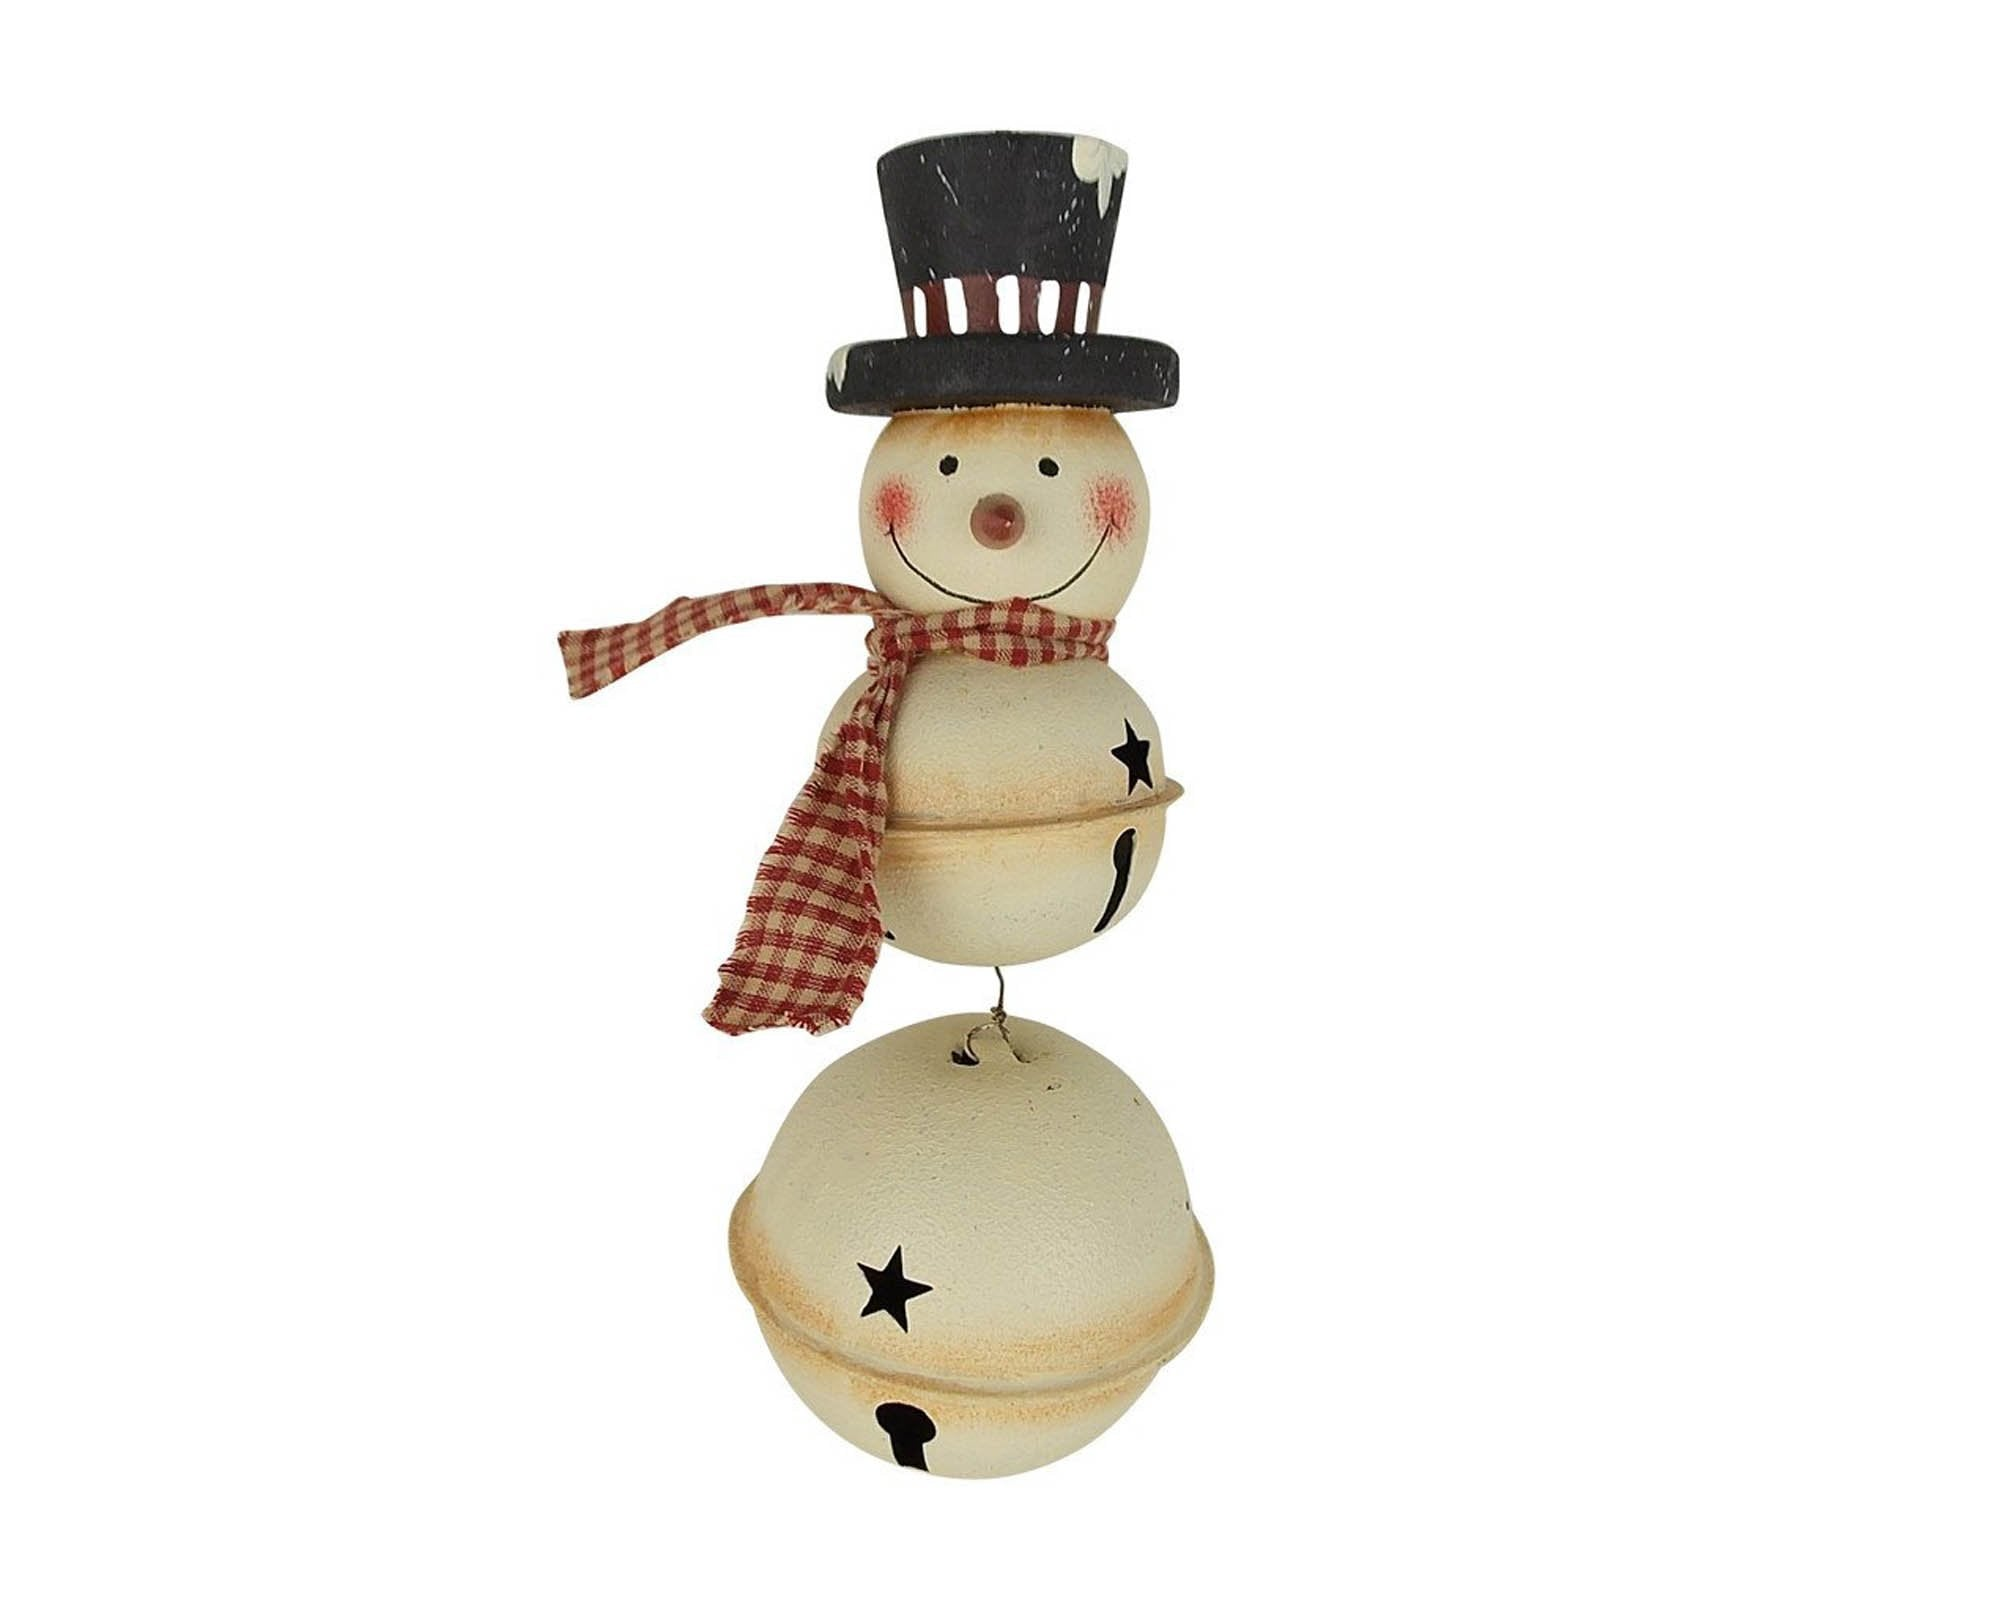 Christmas Top Hat Ornaments.3 Tin Bells Snowman With Fabric Scarf And Black Top Hat Christmas Ornament 10 Tall